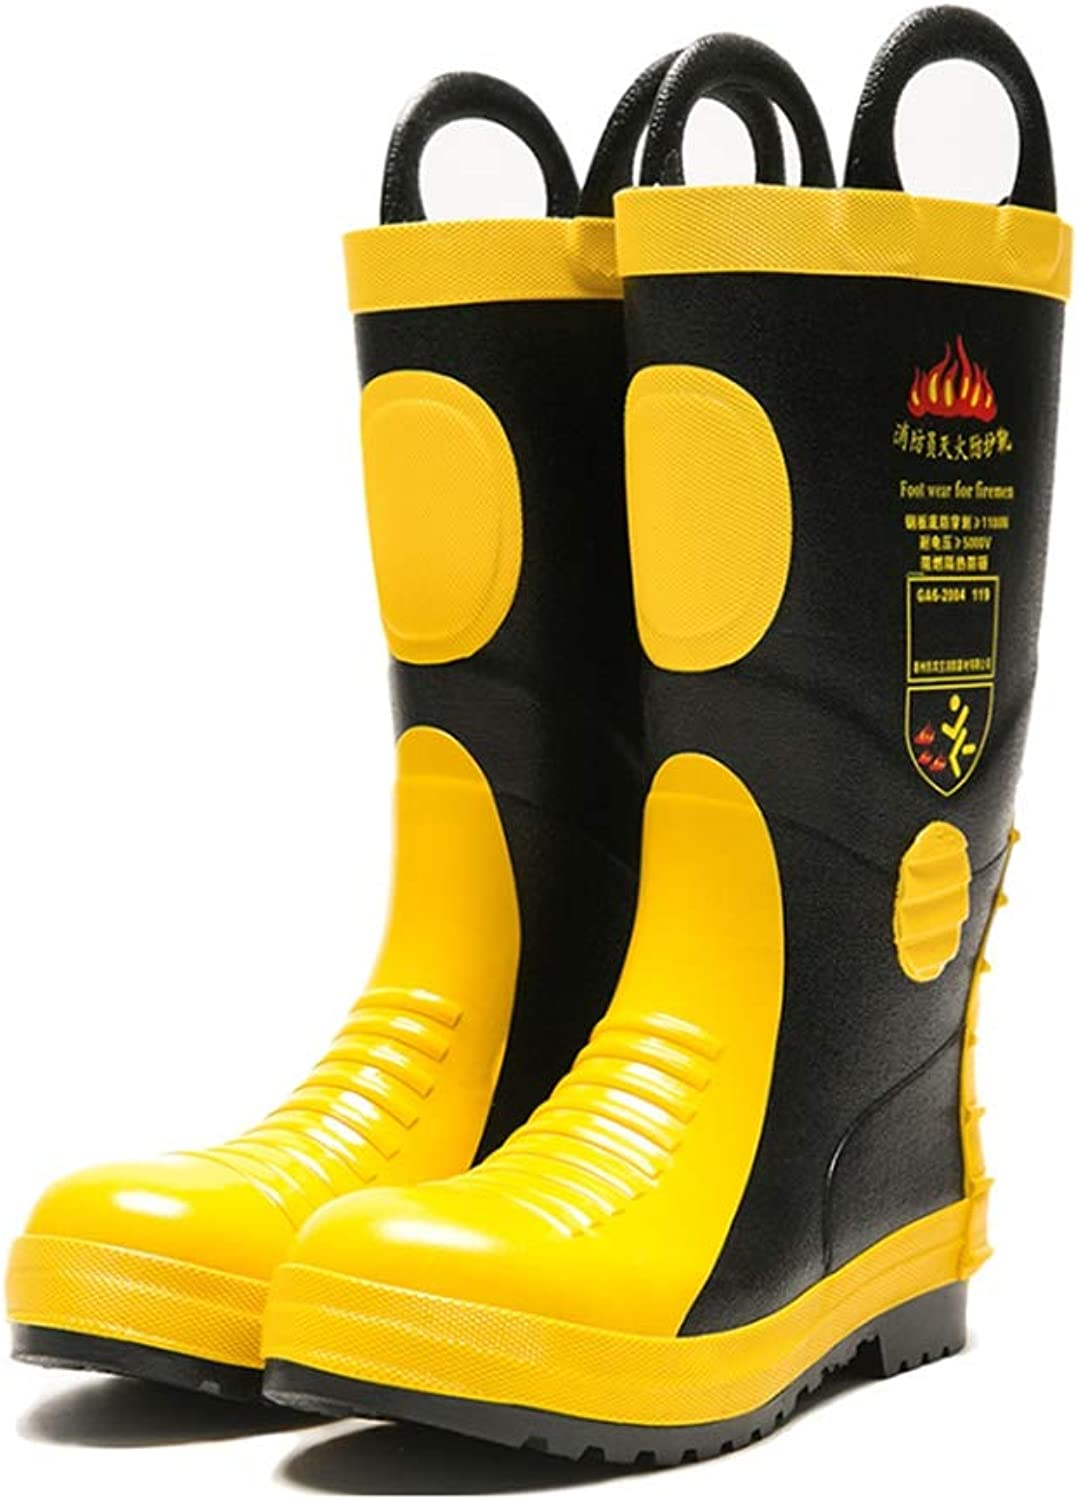 Adult Non-Slip Boots, Fire Predection Boots, Steel Plate Insulation Fire Safety Boots